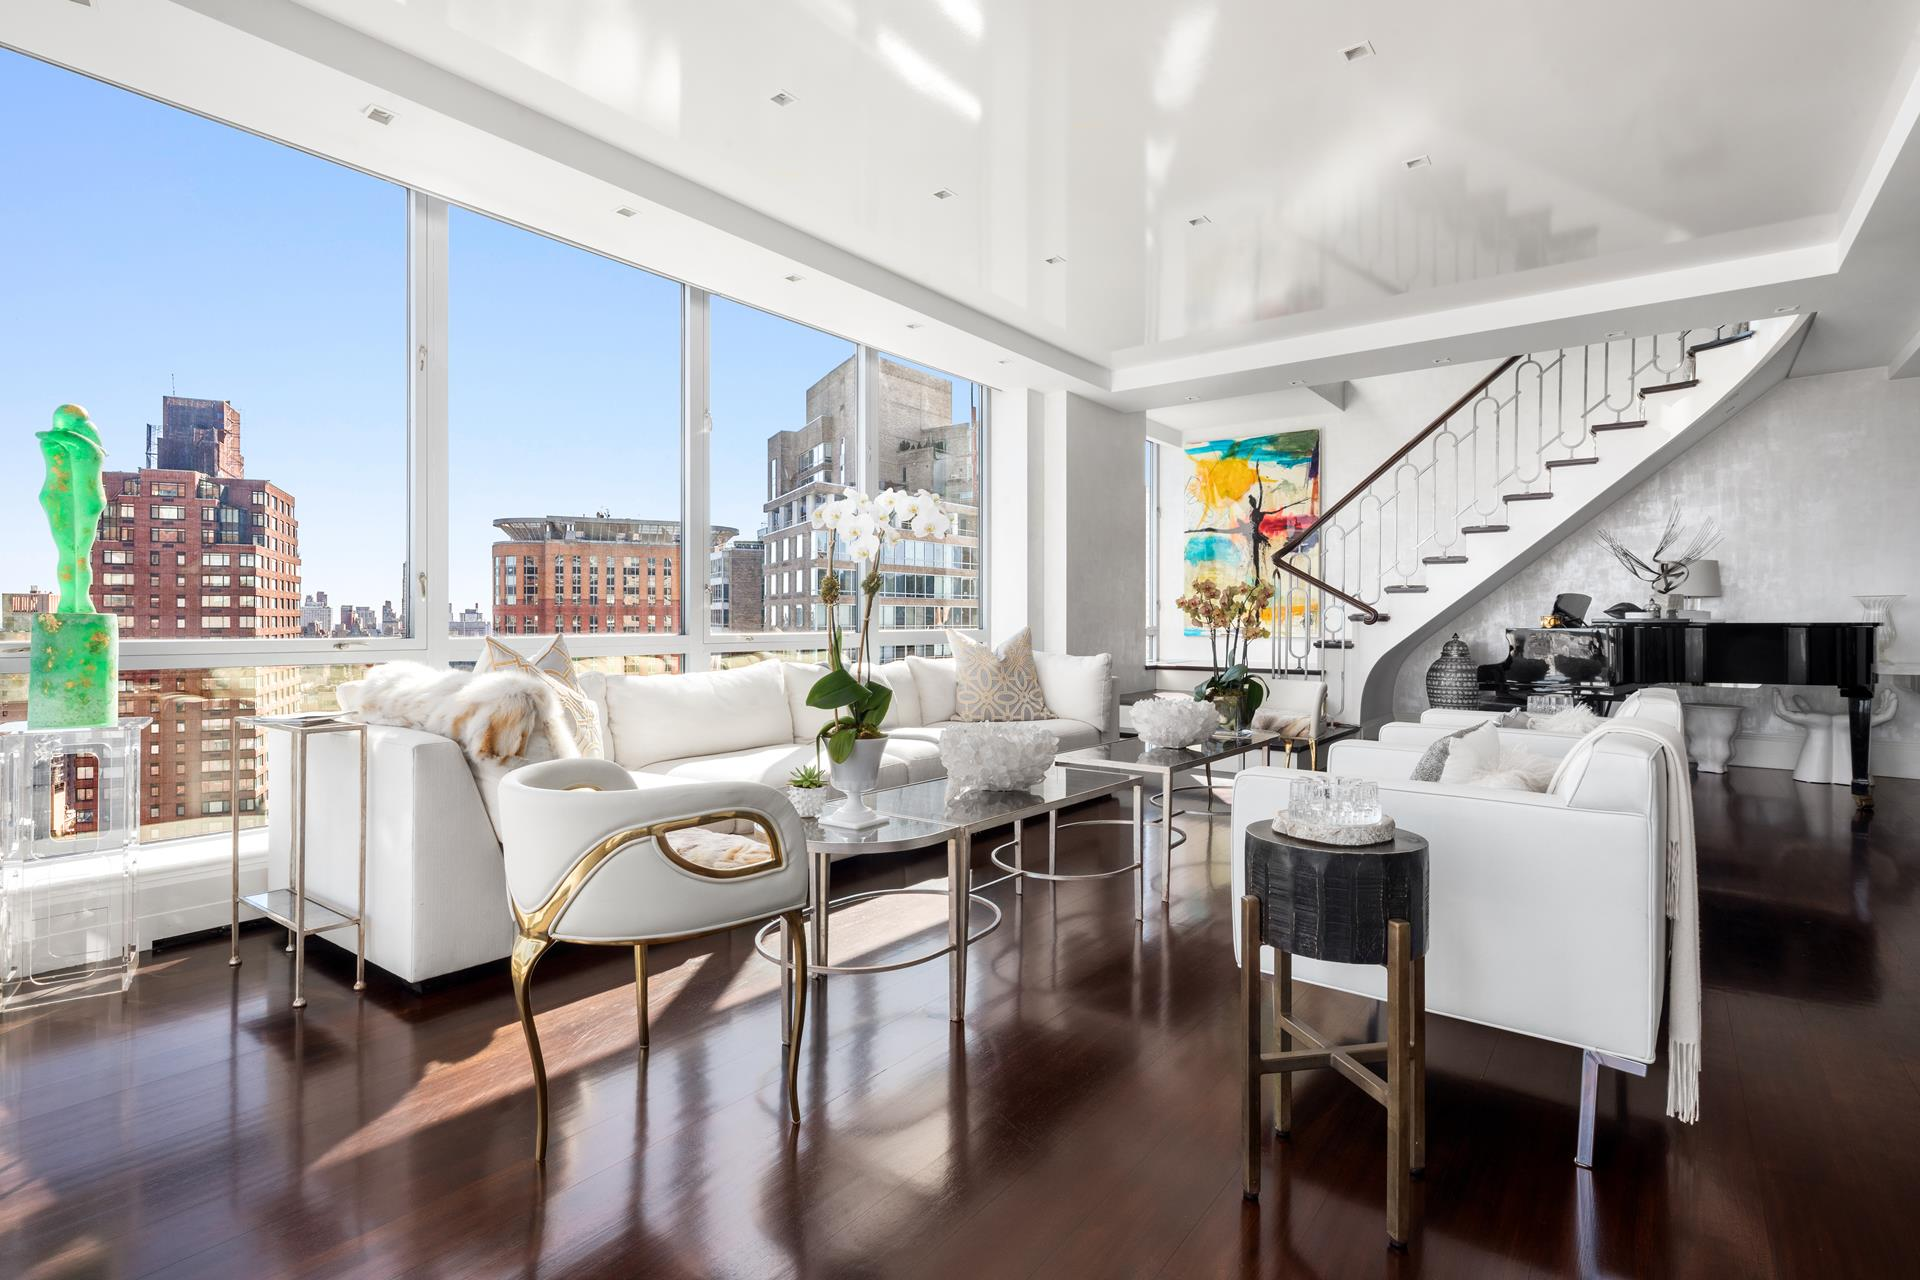 Spectacular, high floor Condominium Apartment with extraordinary, open City and Central Park views. At approximately 4,800 square feet and in mint condition, this beautiful home was renovated to the highest standard and is flooded with light from North,   East and South exposures.     Enter the Gallery to the Living Room, with Central Park views, and the Formal Dining Room with a double-sided fireplace. The exquisite Wood-Paneled Library or 5th Bedroom has a full bath en-suite. A Peloton and a treadmill are both cleverly hidden here as well.    The enormous Eat-in Chef's Kitchen with top-of-the-line appliances provides another warm and wonderful gathering place. Off the kitchen is the Laundry Room, with an oversized vented washer/dryer.    The dramatic staircase in the Living Room leads to the 2nd floor and into the glamorous Primary Bedroom Suite, with floor-to-ceiling windows, side Central Park views and a gas fireplace. The Primary Bathroom is done entirely in White Onyx with a double vanity,   soaking tub and large walk-in shower - a true sanctuary. The suite is completed by spacious windowed Dressing Room.    The upstairs hallway is lined with closets and leads to 3 additional Bedrooms and 3 additional Bathrooms.    No detail was overlooked in designing this magnificent home. The apartment features Central AC, a Creston Smart Home System, and seamless and exceptional craftsmanship throughout with marble and mosaic tile.    Located in the heart of Lincoln Square, the Grand Millennium provides its residents with a 24-hour doorman, a concierge, and a live-in resident manager. Central Park, Columbus Circle, Lincoln Center, Time Warner Center, Equinox Sports Club, upscale shopping   and dining are all easily accessible. The building needs 48 hours' notice before appointments.